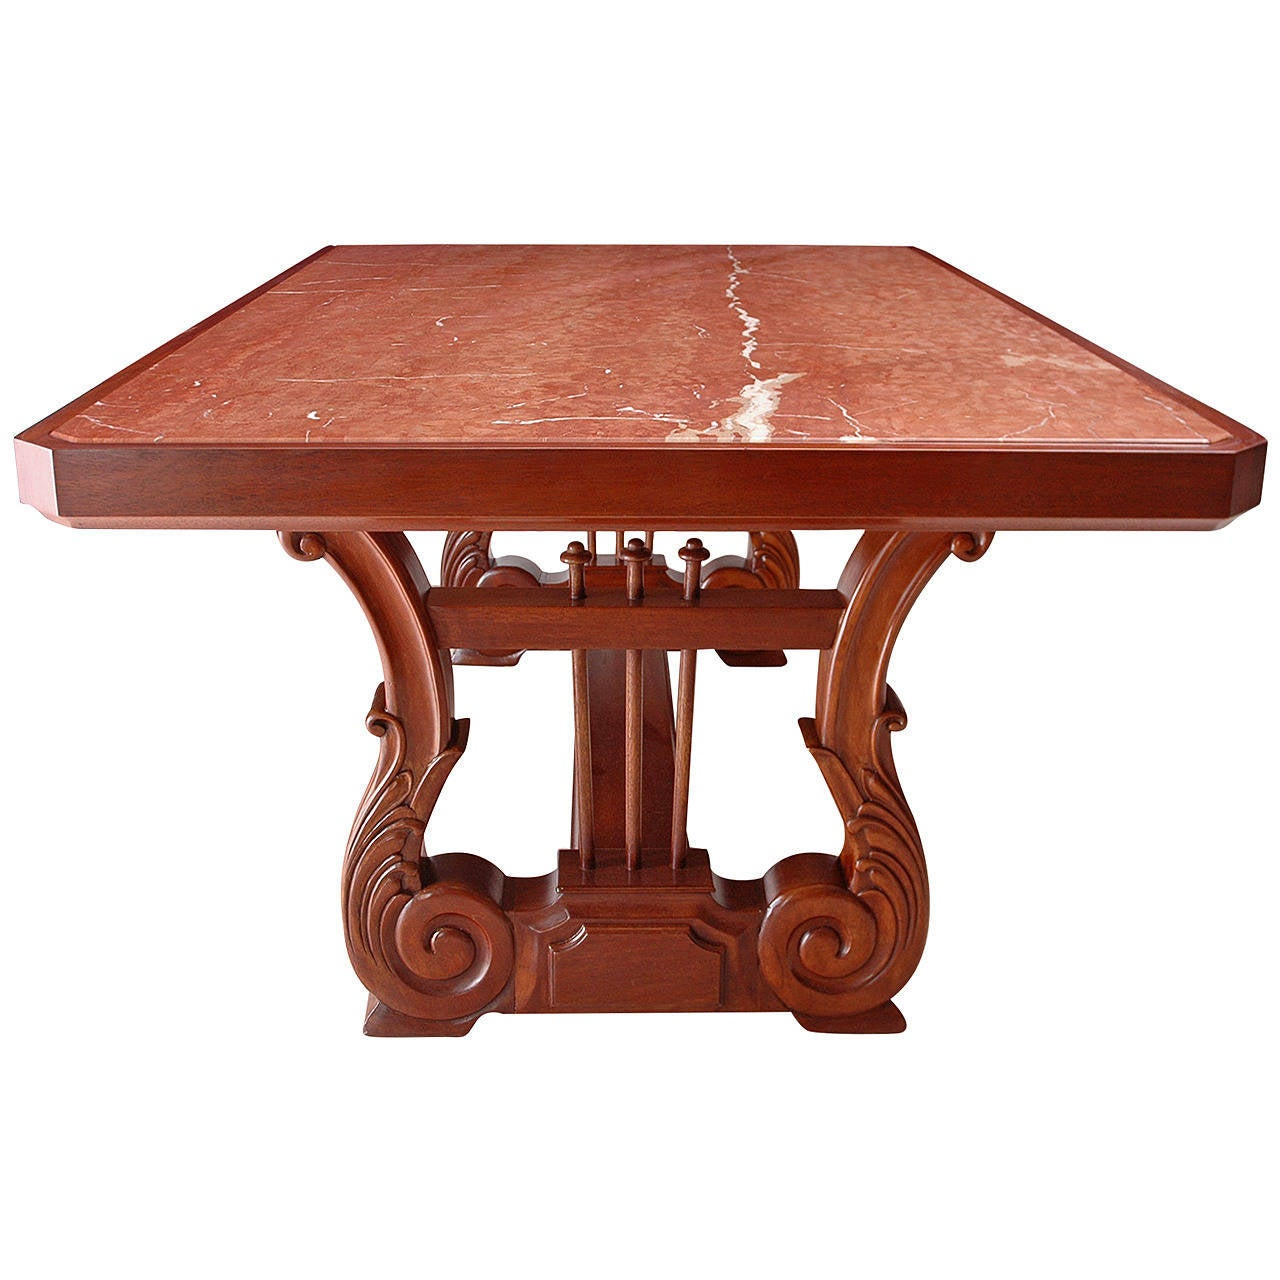 75 Desk Or Dining Table With Carved Lyre Trestle Base And Inset Marble Top For